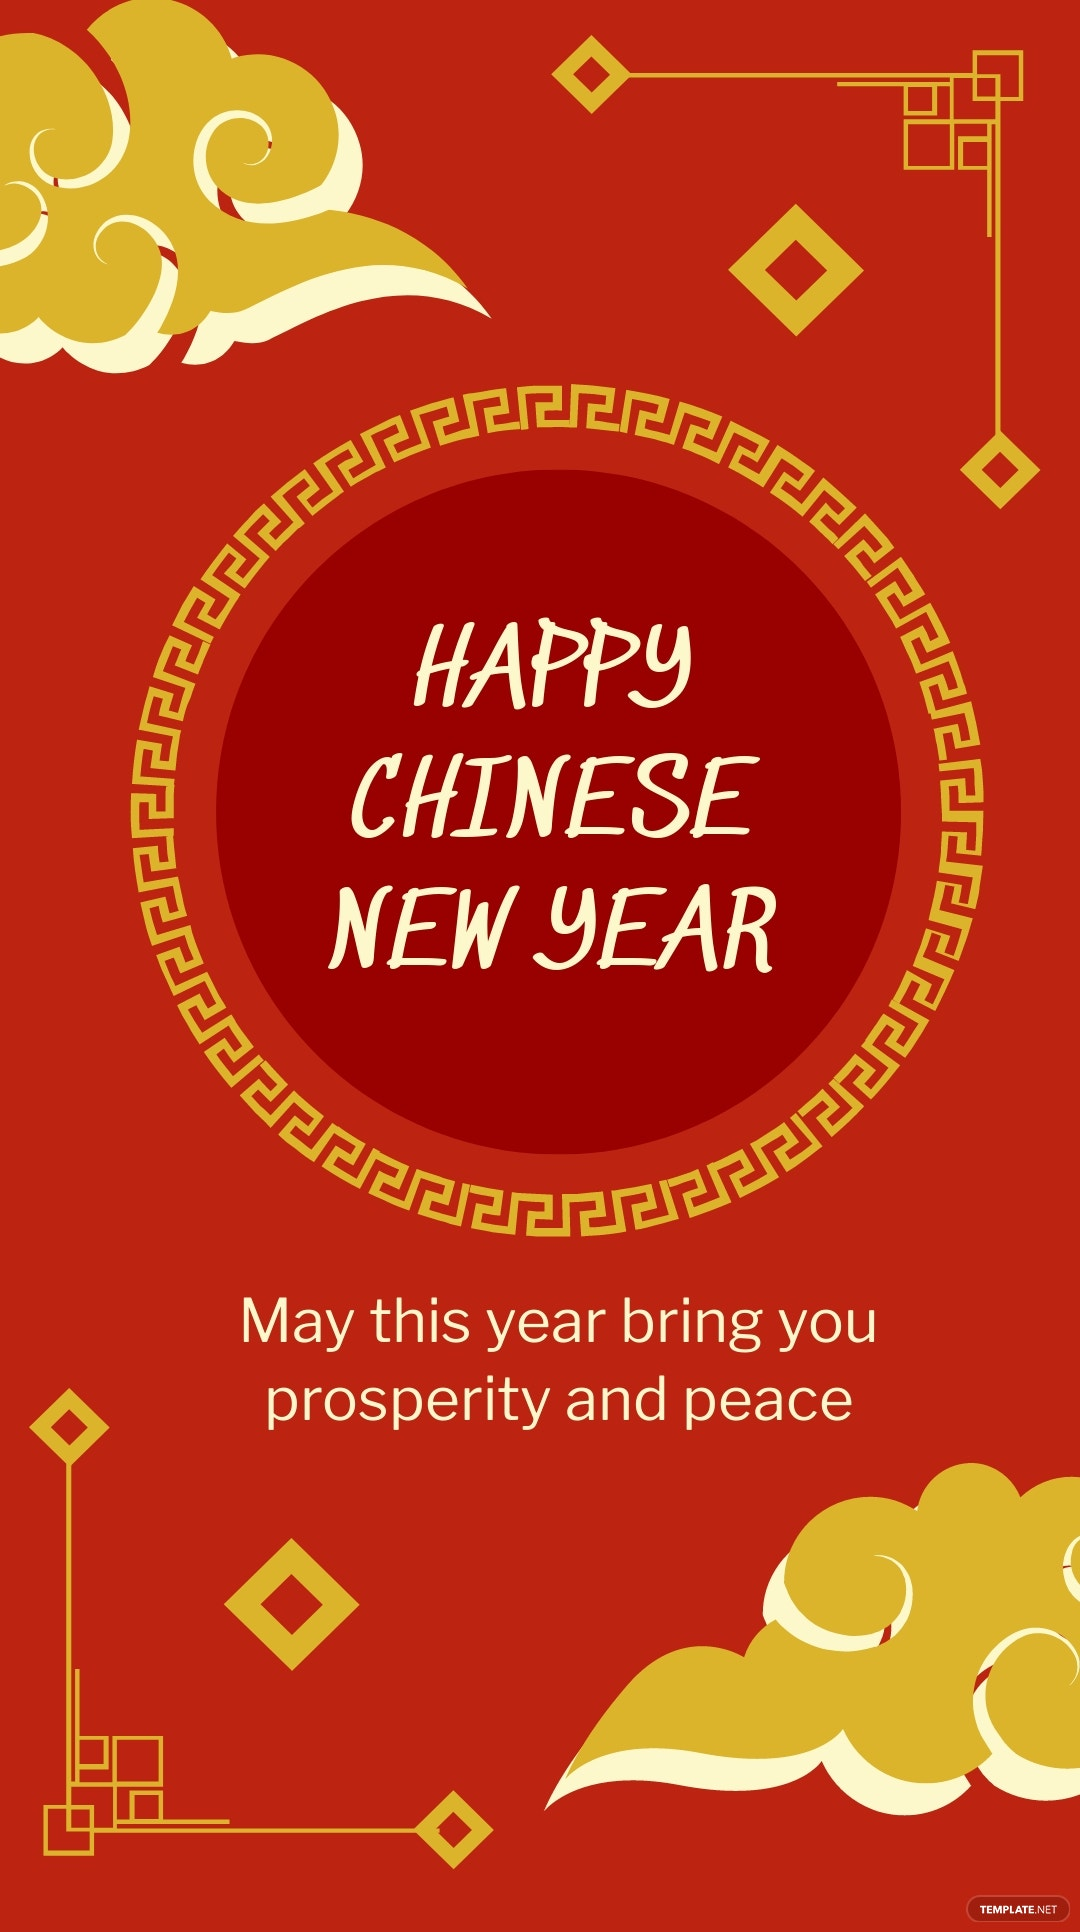 Vintage Chinese New Year Instagram Story Template.jpe